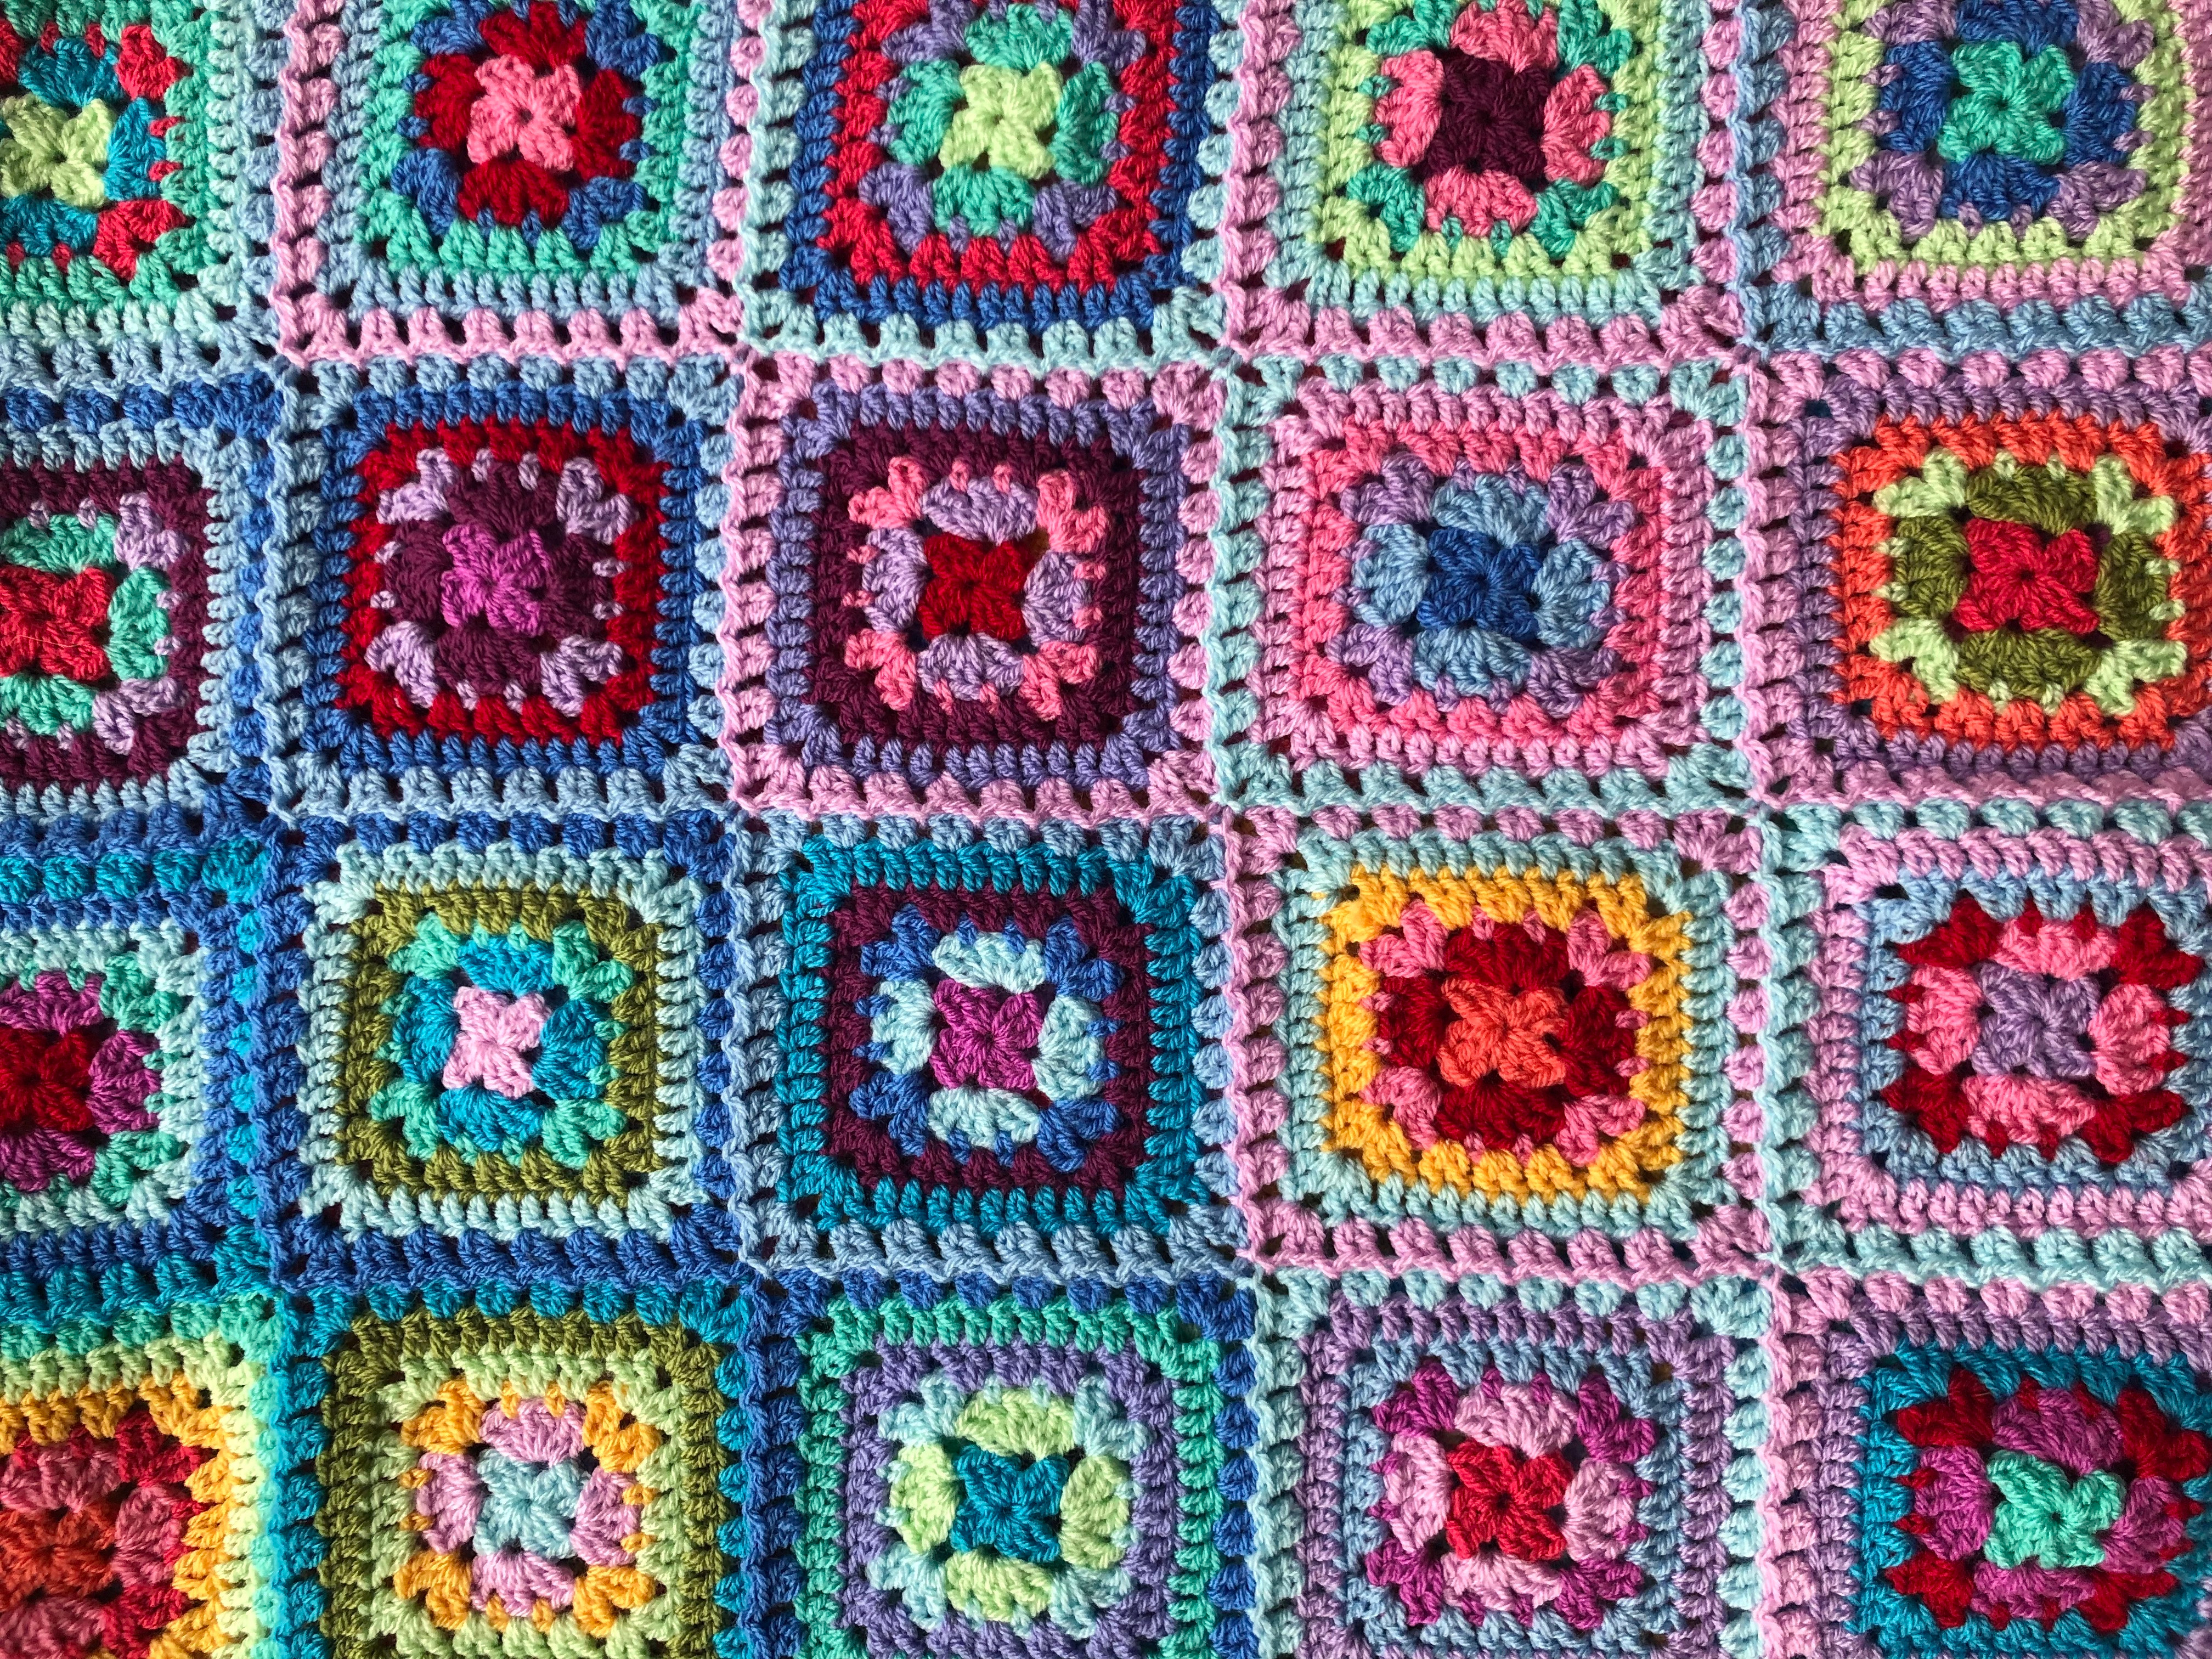 Learn to Crochet - Saturday 14th March